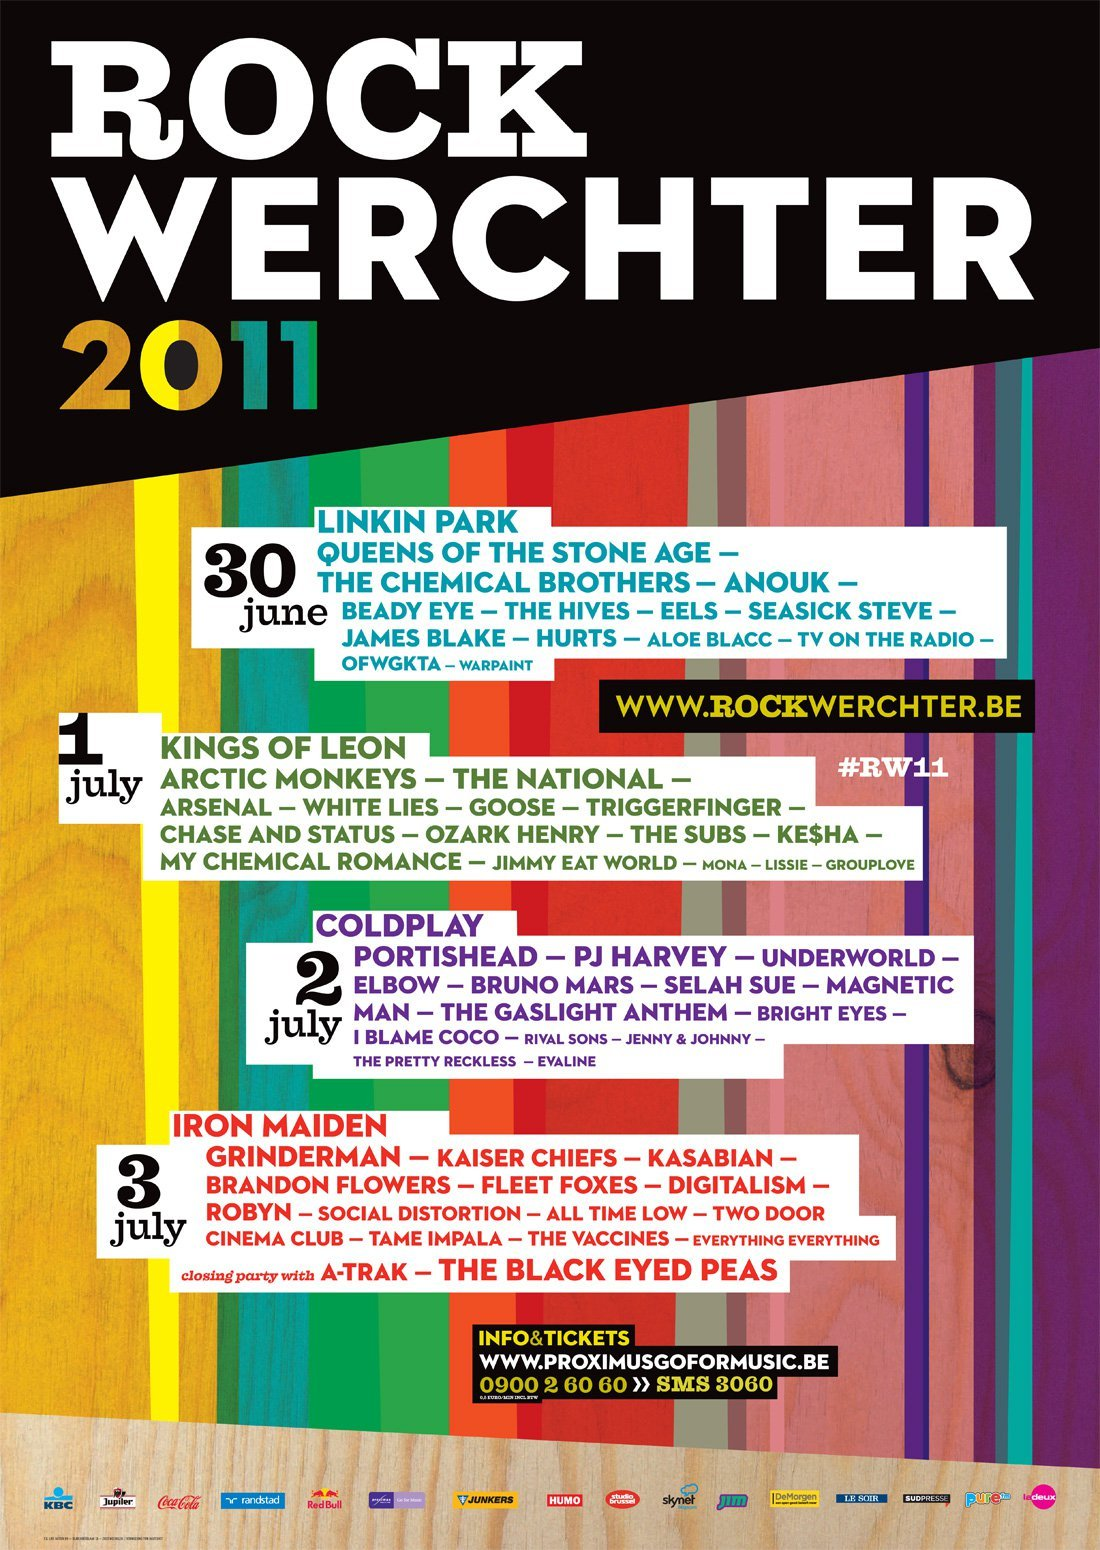 Rock Werchter 2011 at Werchter (Werchter) on 30 Jun 2011 ...